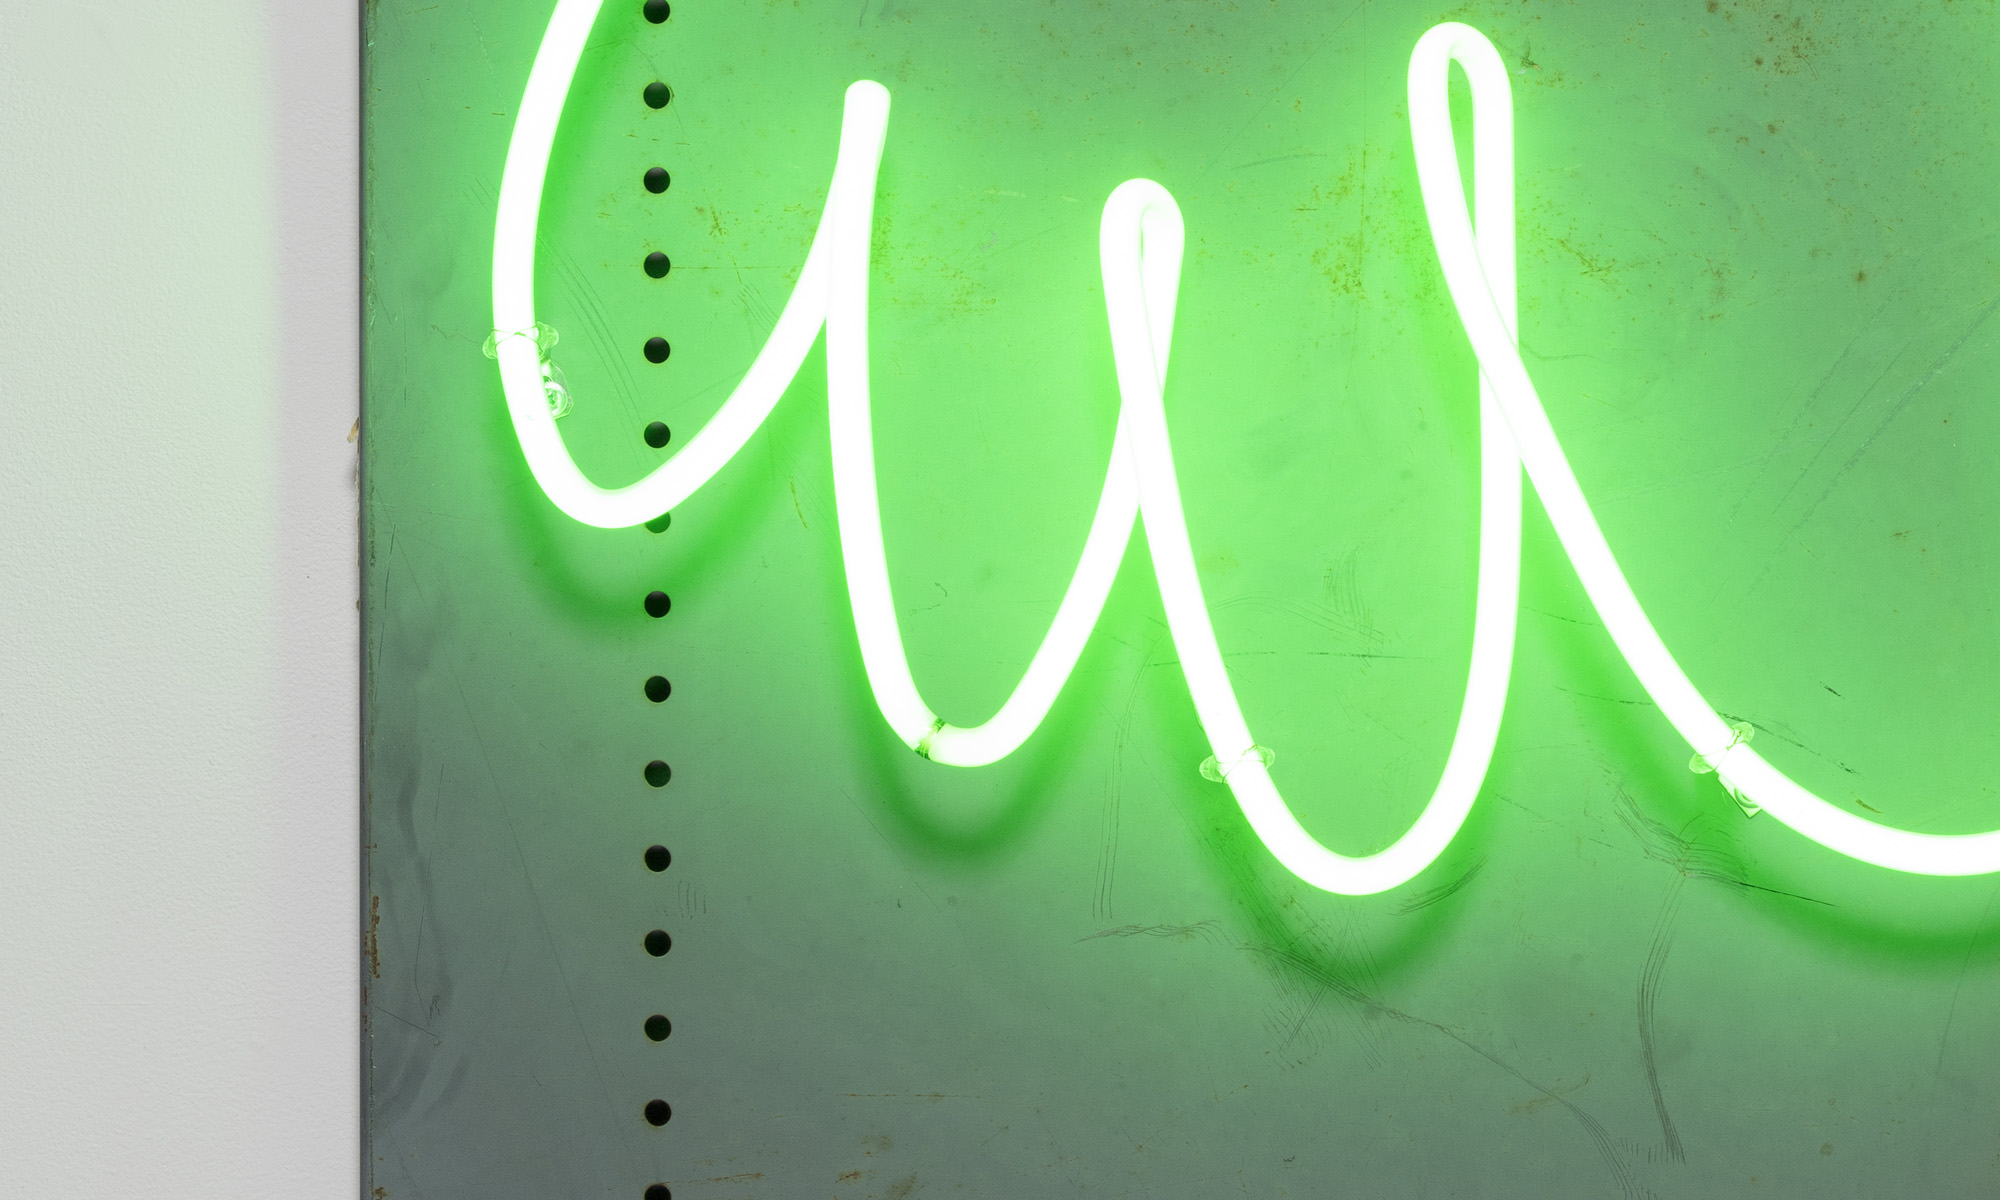 Yung Jake. <em>hair (green)</em>, 2020. Neon on found metal, 36 x 24 inches  (91.4 x 61 cm) Detail